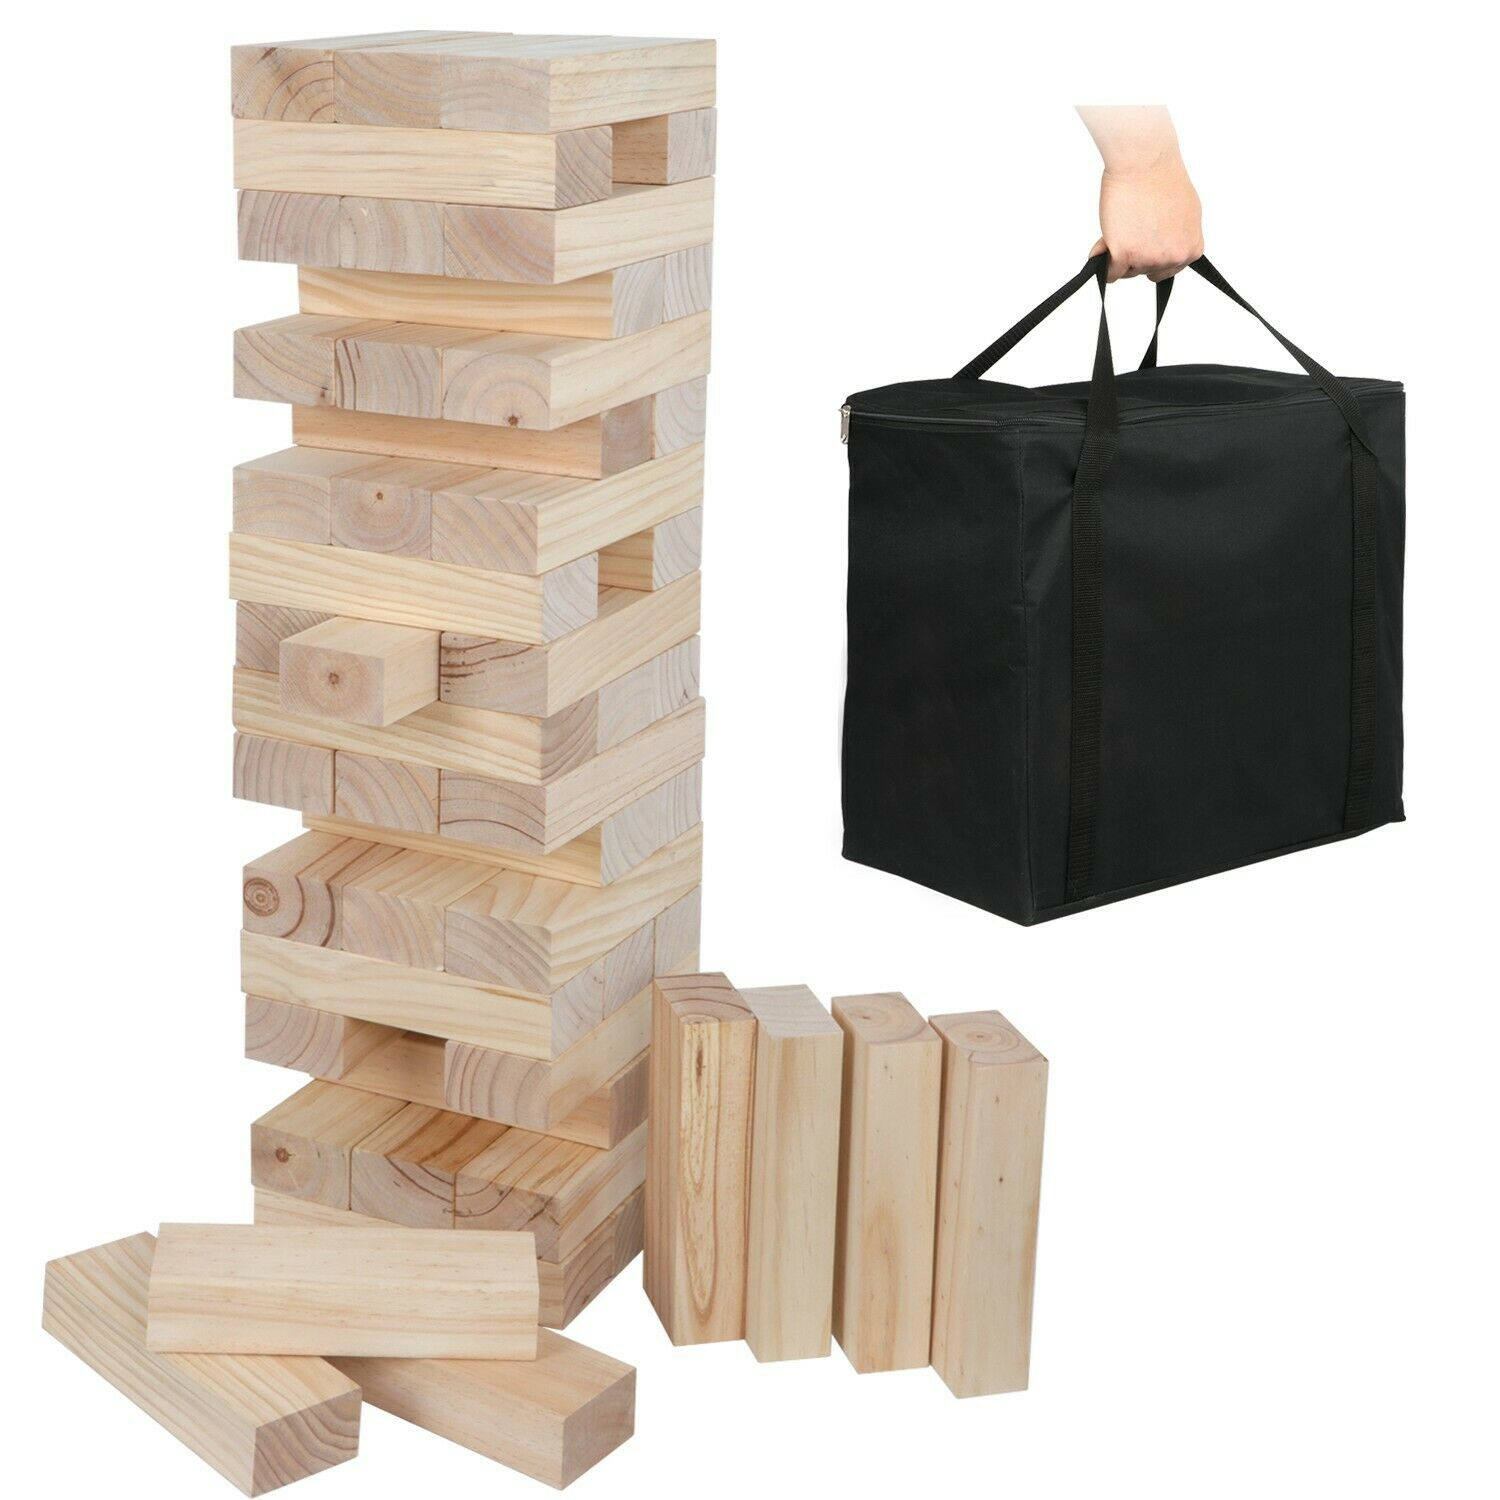 Toppling Tower - Giant No Print Version - With Carrying Bag 54 Pieces